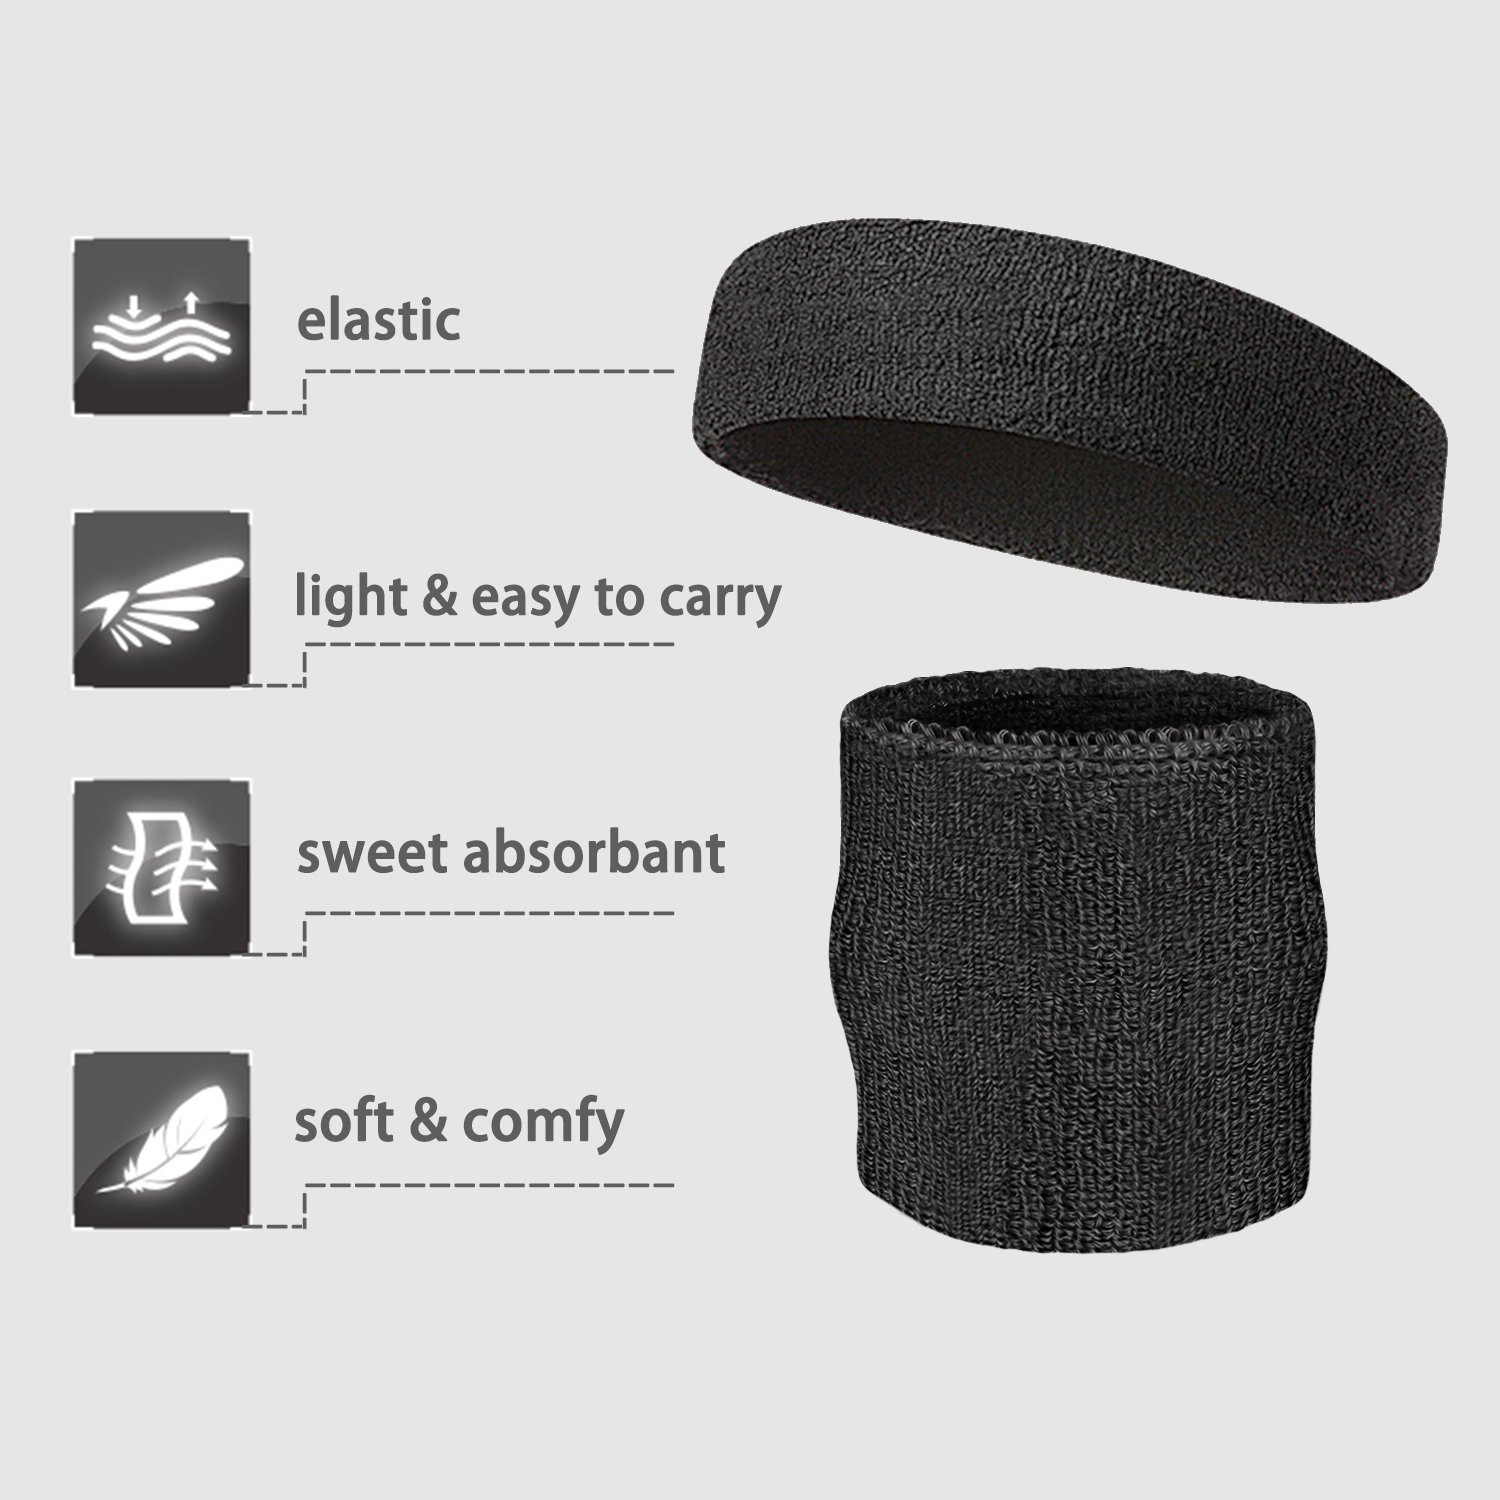 Elehere 2018 New Sweatband Wristband for Sports Basketball Football Absorbent Party Outdoor 3.5'' Pack of 6 (Black- Headbands & Wristbands) by Elehere (Image #4)